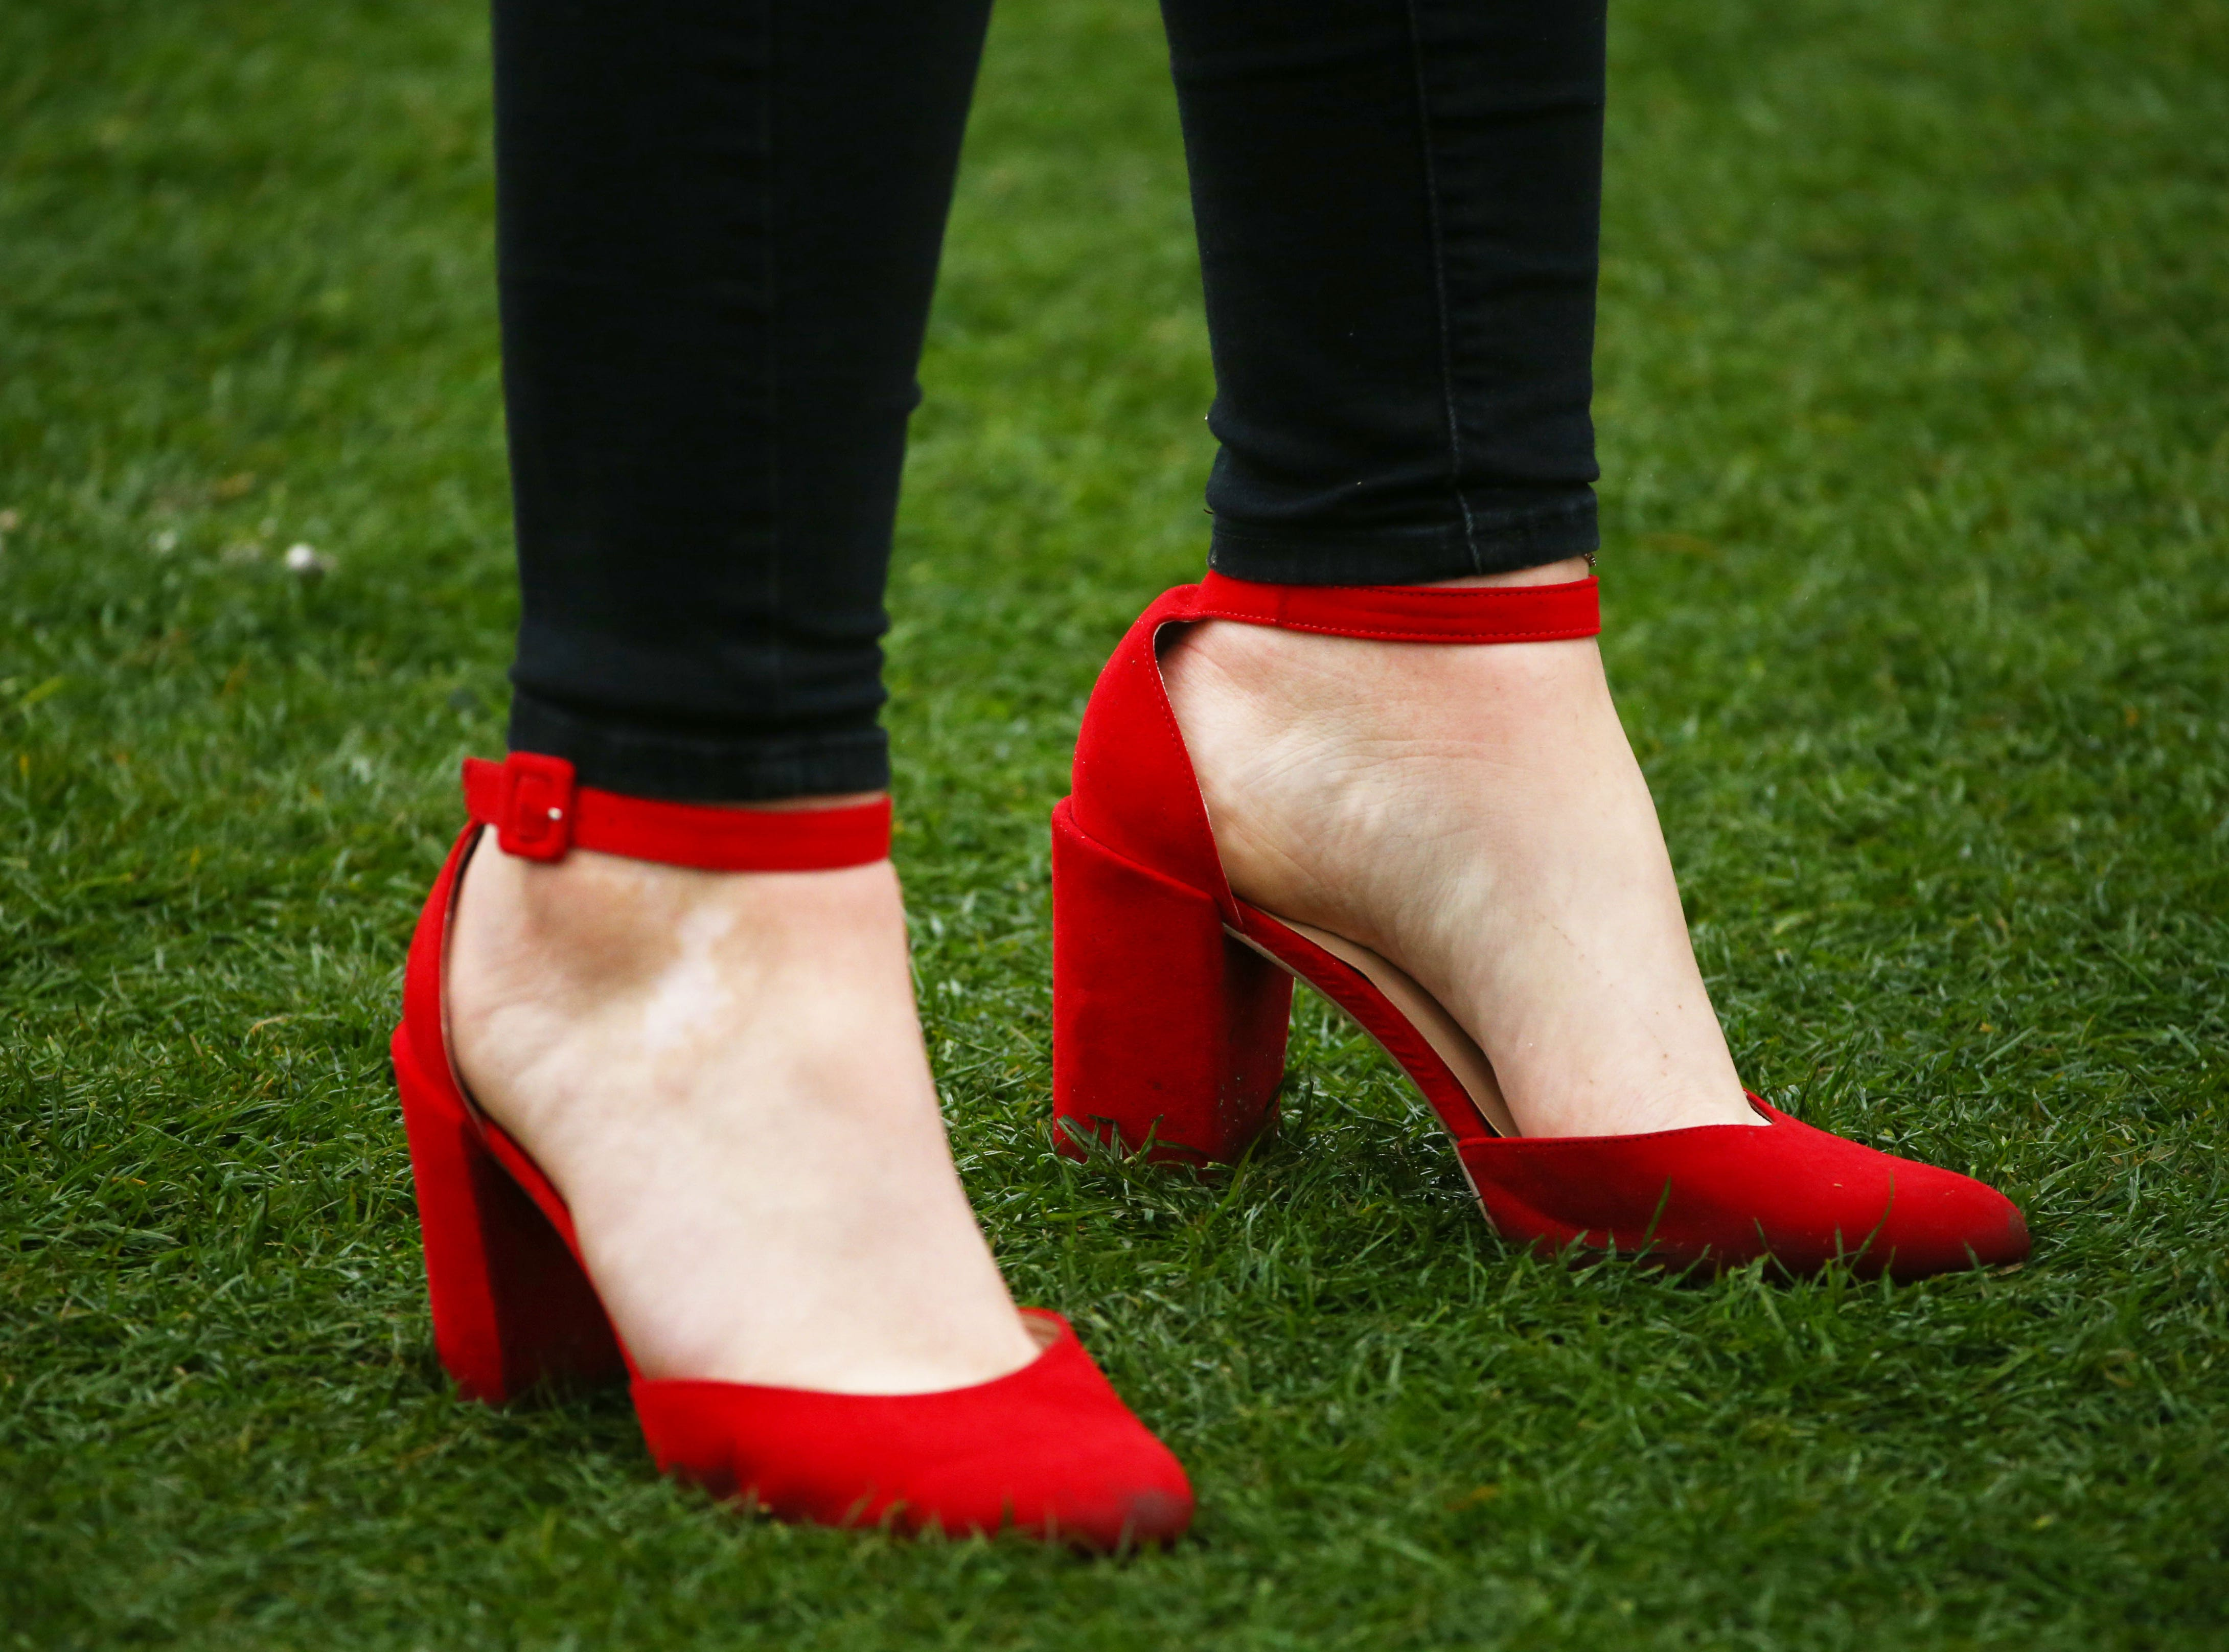 A spectator wears red heels at the 9th green during final round action on Feb. 3 during the Waste Management Phoenix Open at the TPC Scottsdale.